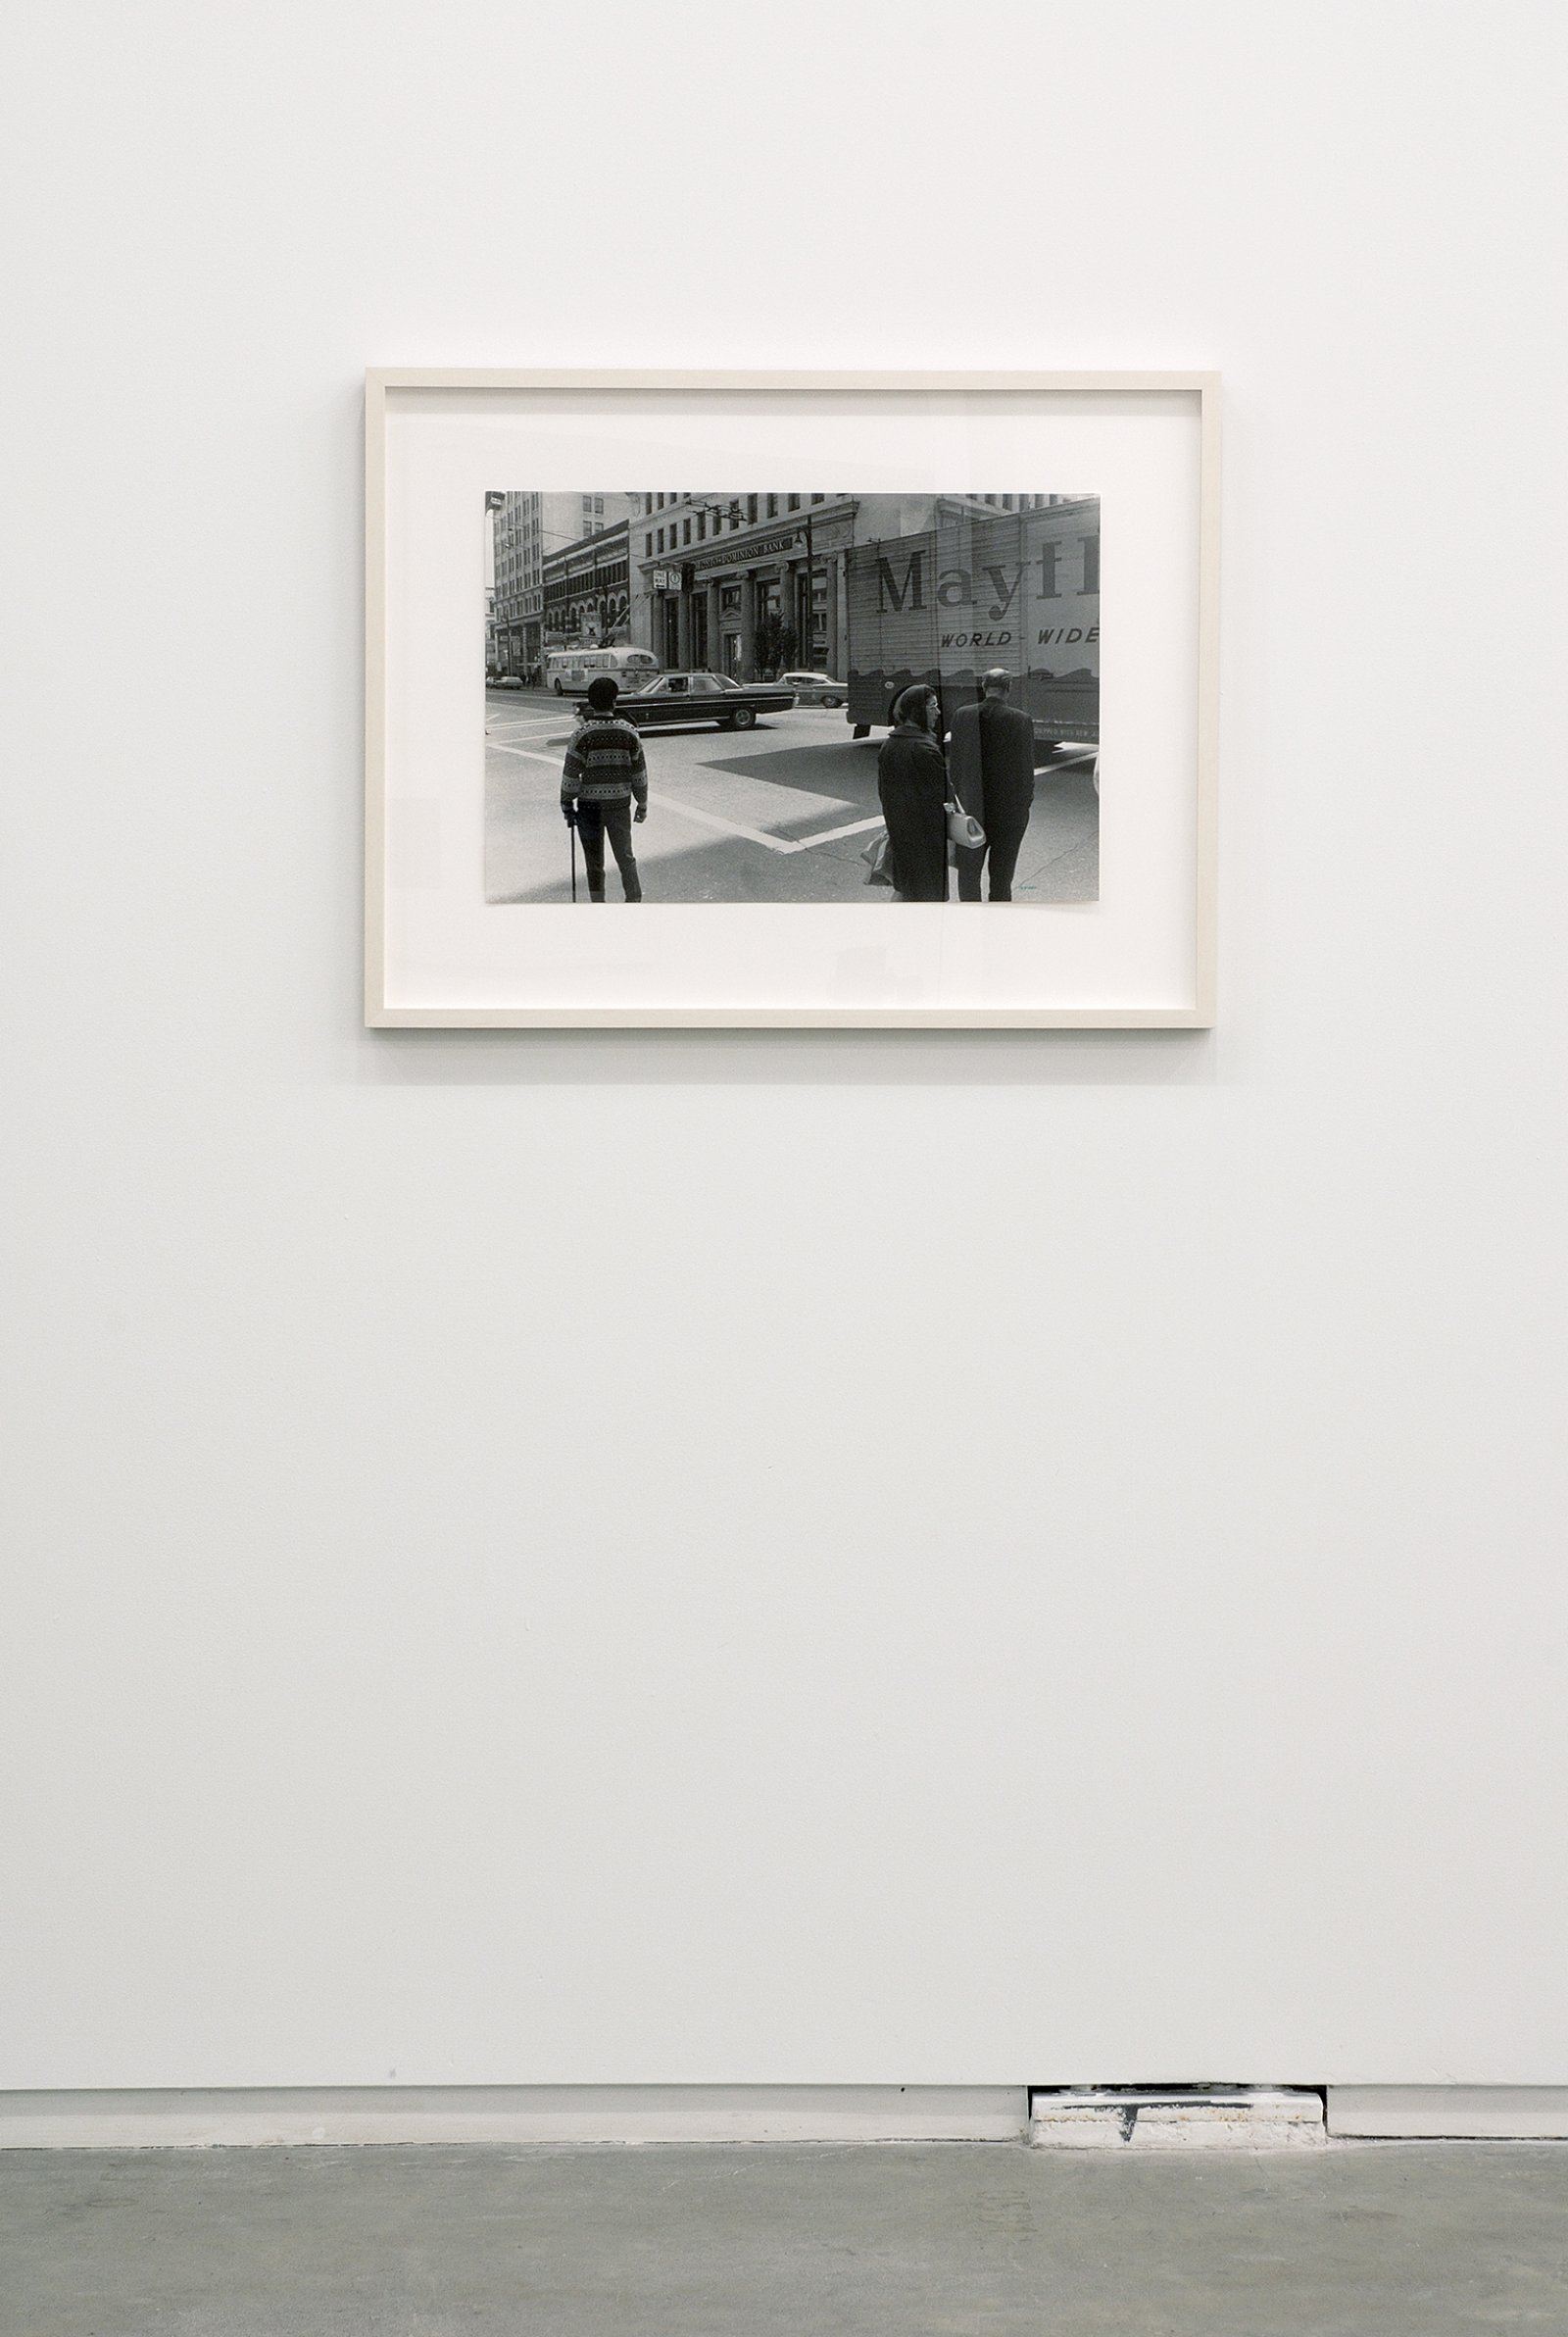 ​Ian Wallace, Untitled (Intersection), 1970–1995, silver print, 16 x 24 in. (39 x 60 cm) by Ian Wallace